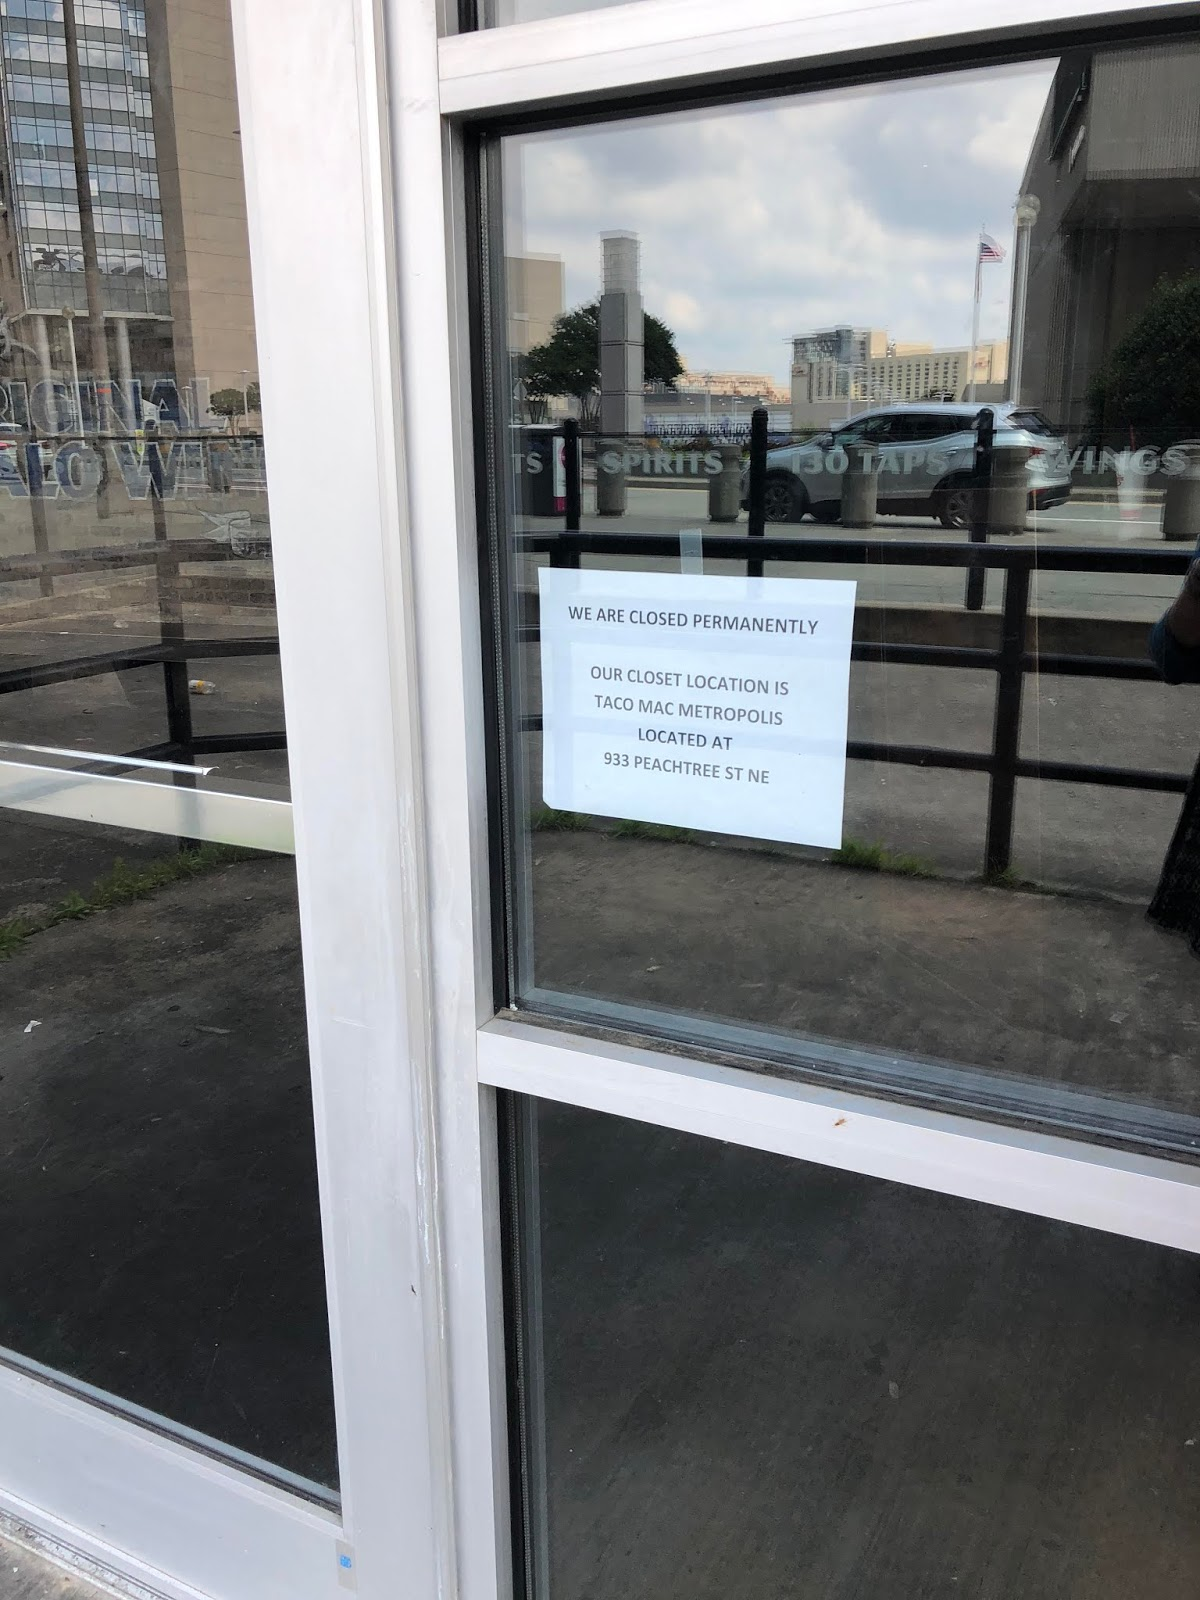 Arena And Cnn Center Across The Street From Georgia World Congress Restaurant Closed On April 30 Reportedly Without Warning